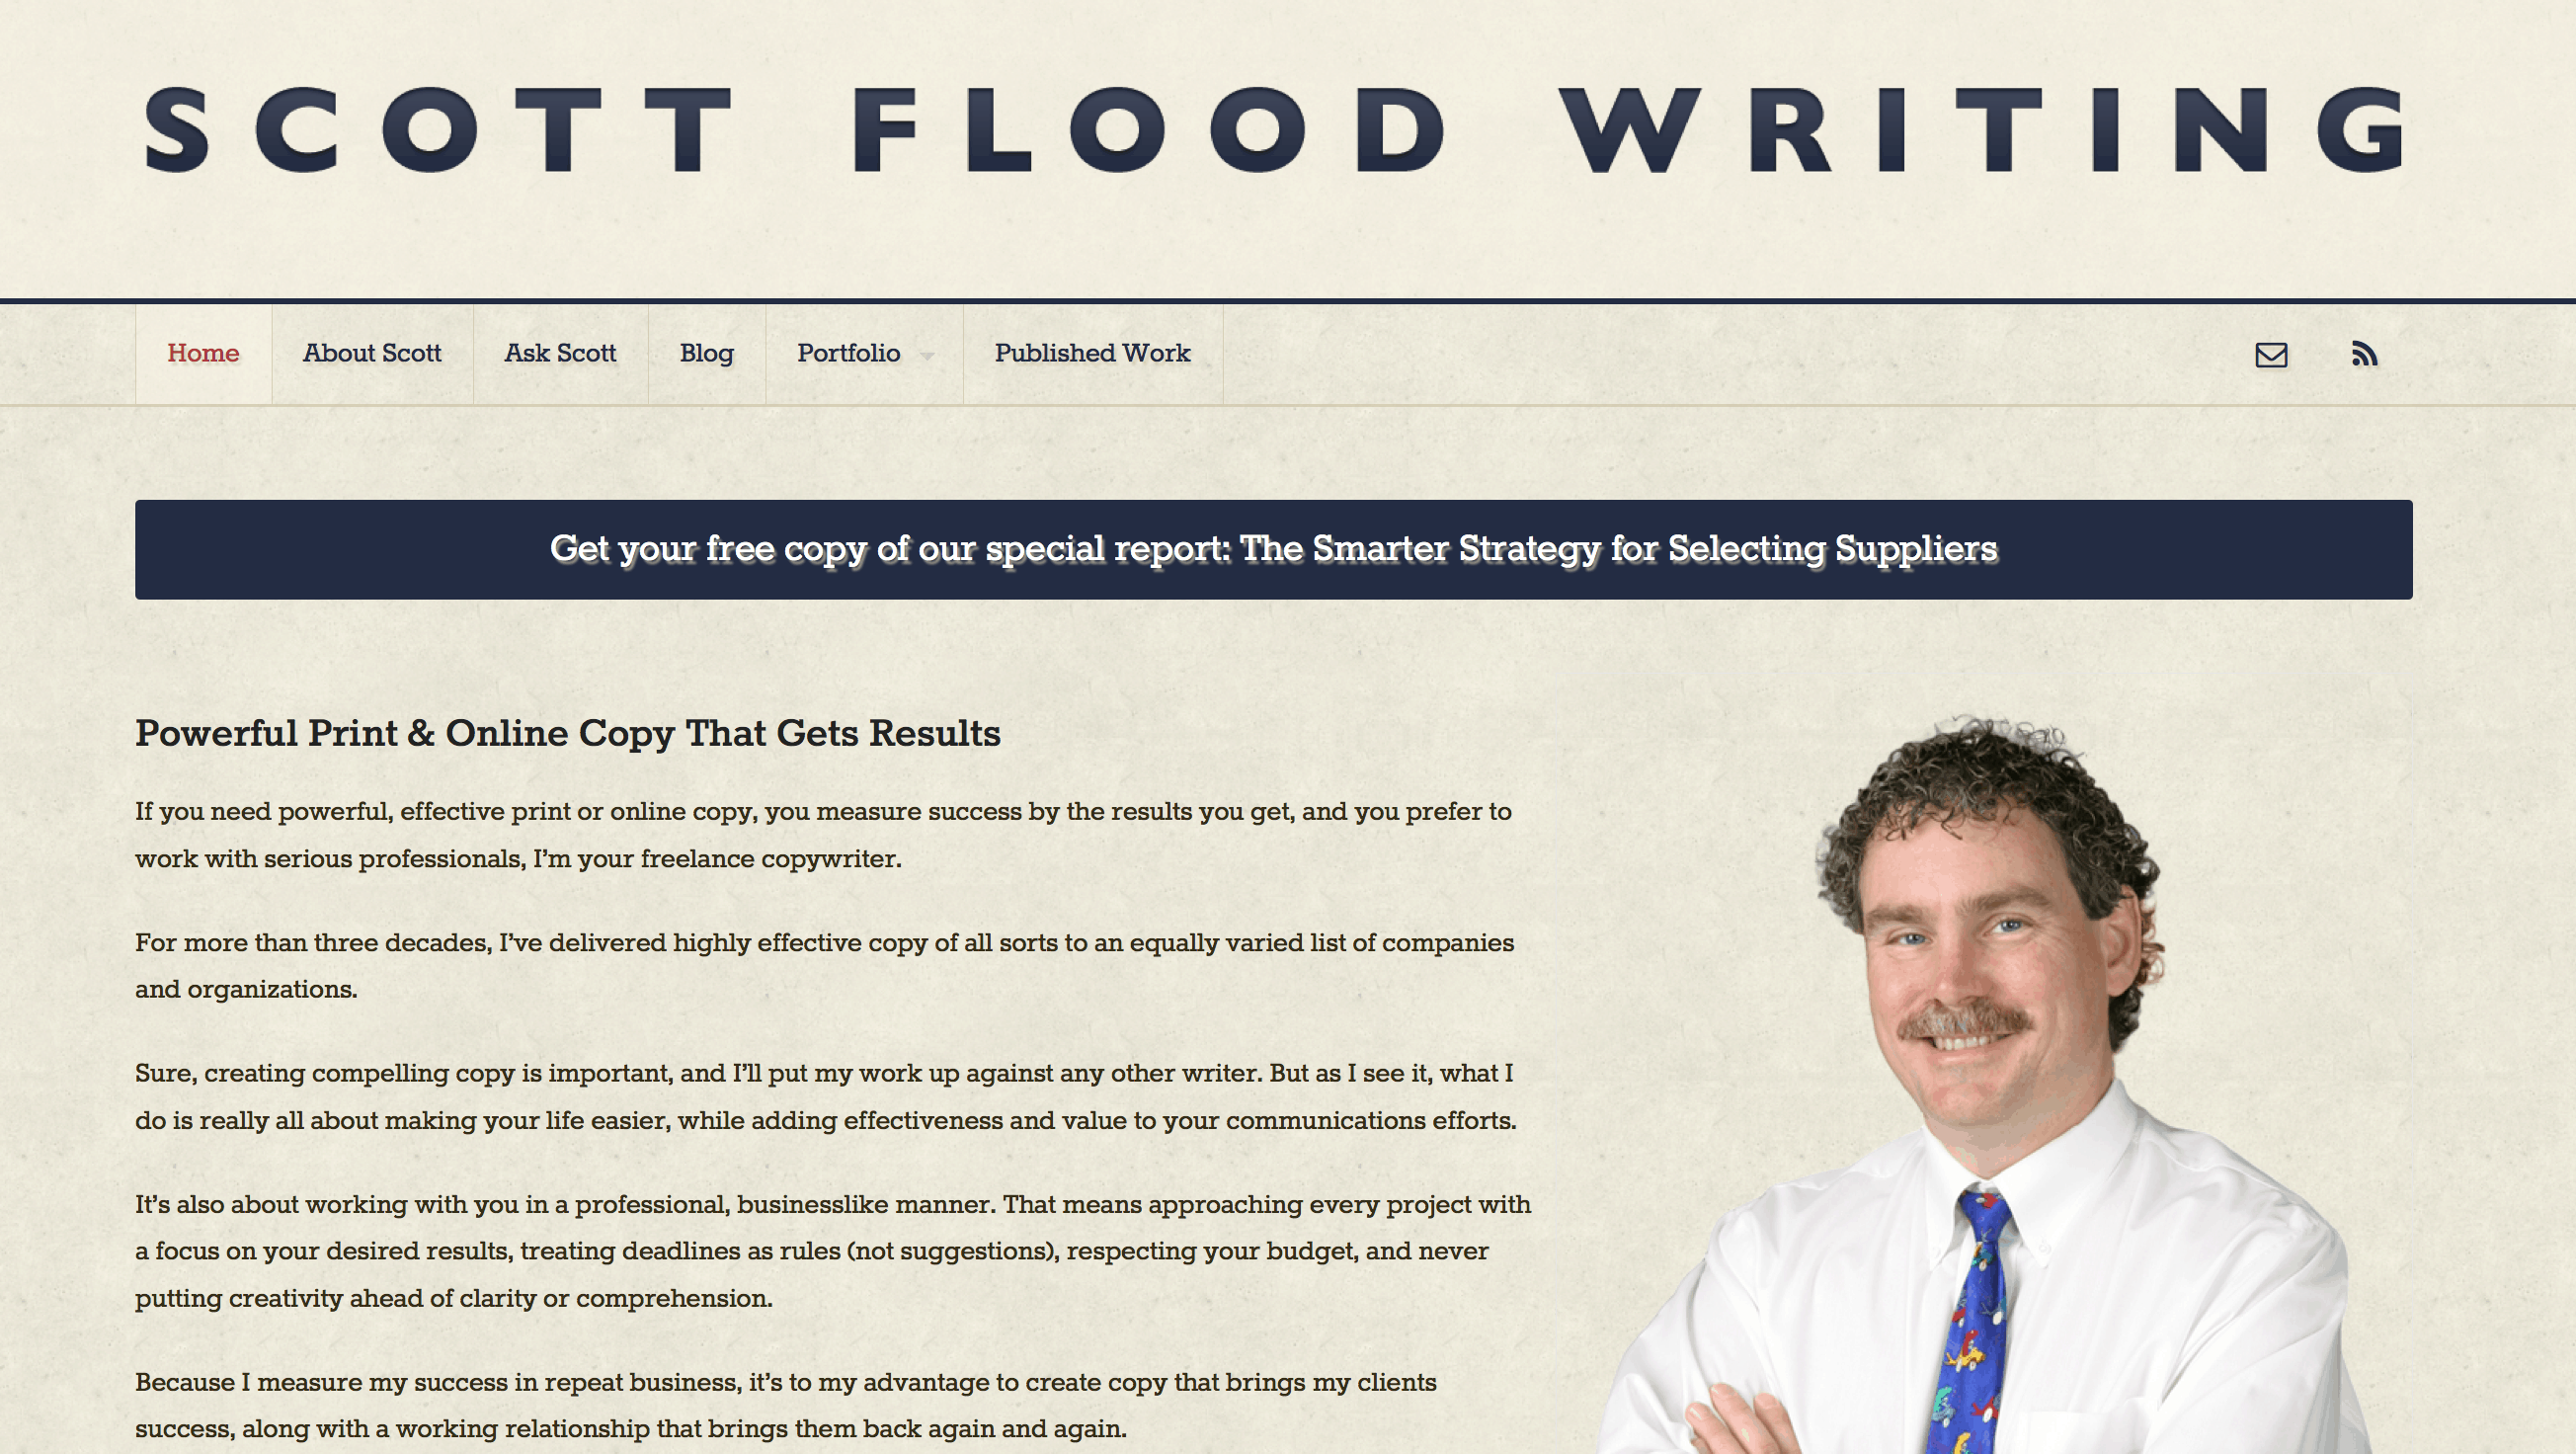 the year of the flood essay The deadliest flood came in 1931, when between 1 and 4 million people were killed thirty-four thousand square miles (88,000 sq km) of land were flooded, leaving 80 million people without homes.